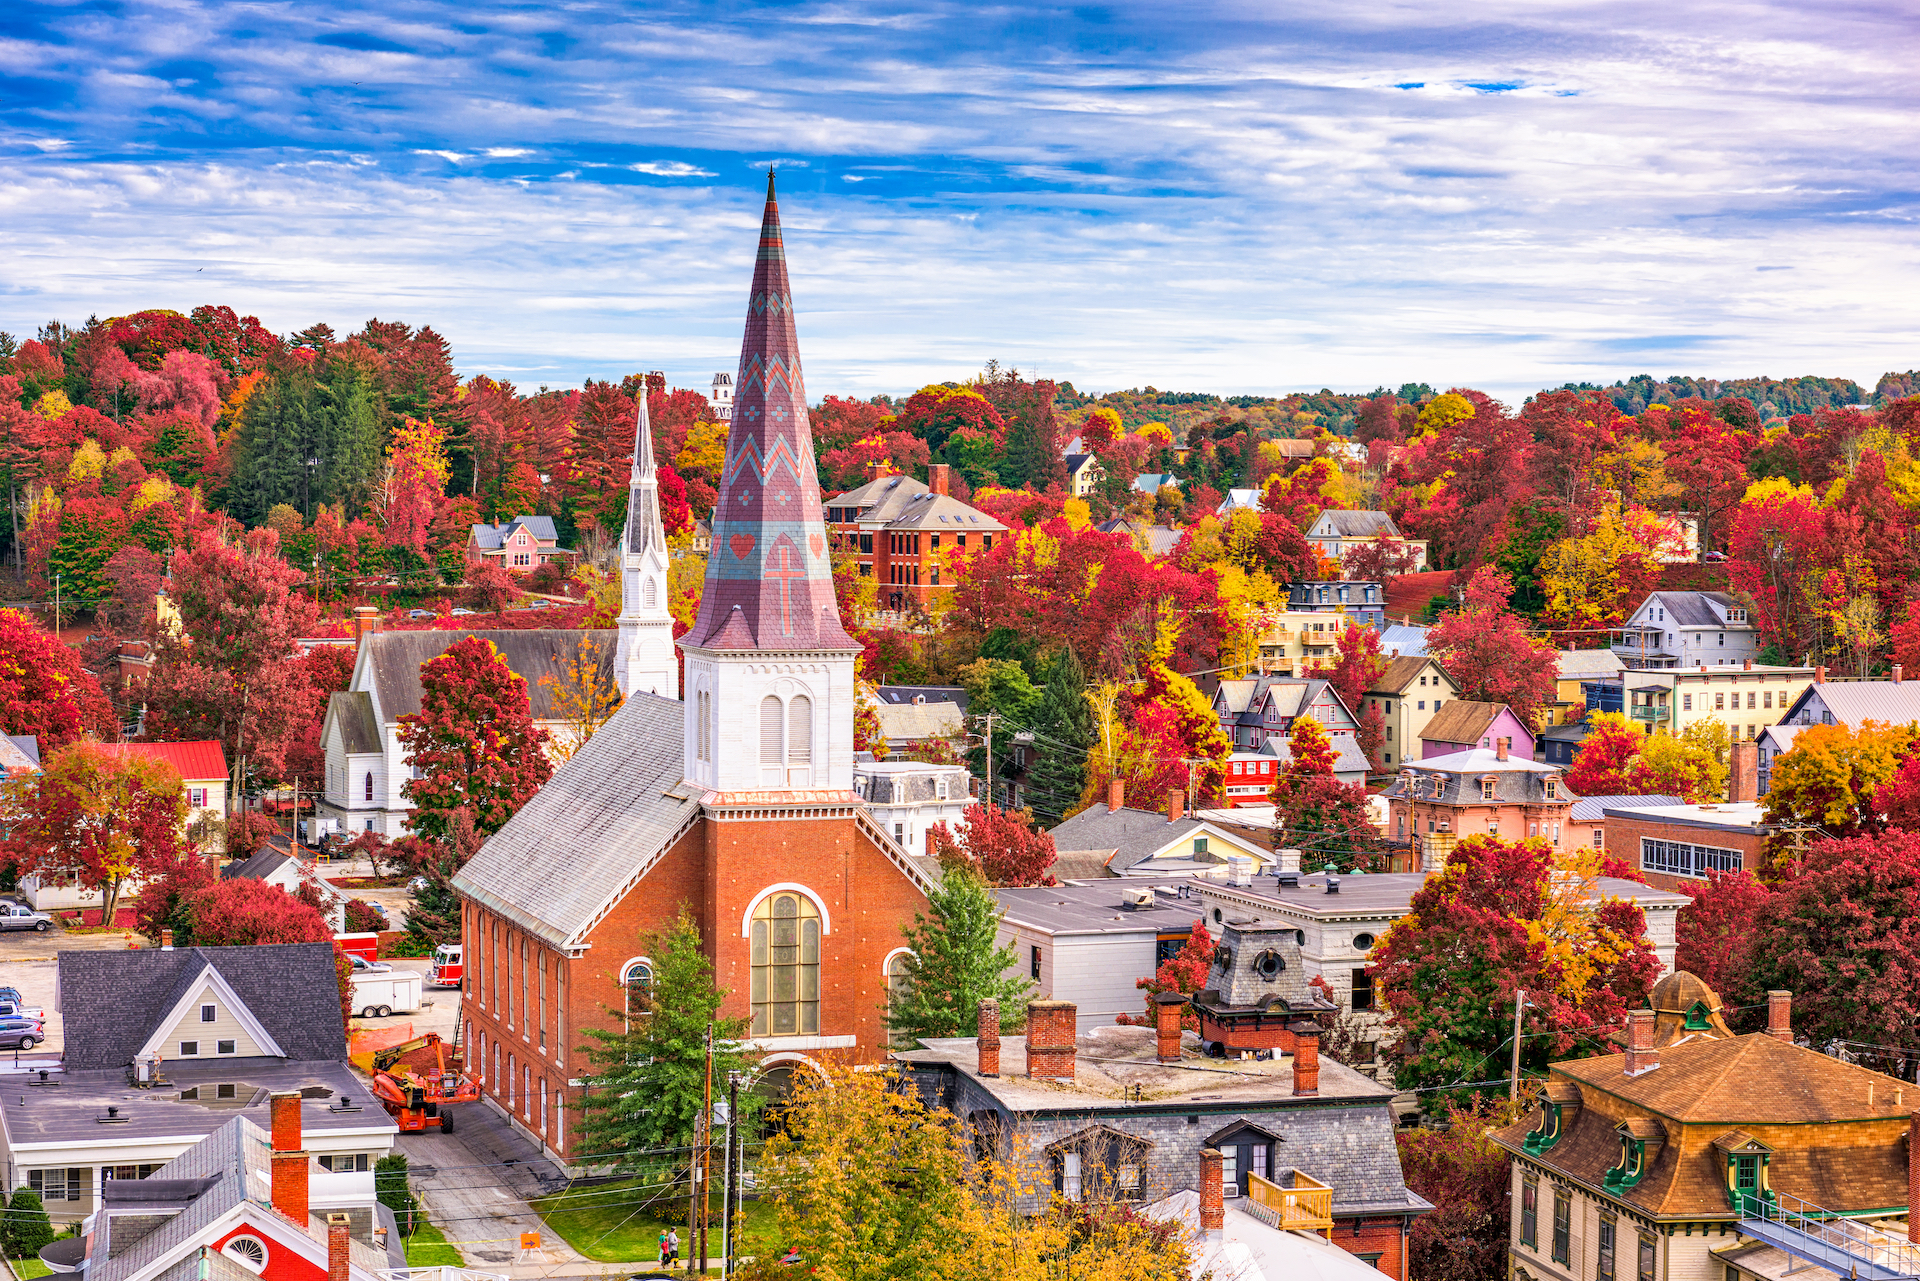 aerial view of red roofed buildings and trees with fall leaves